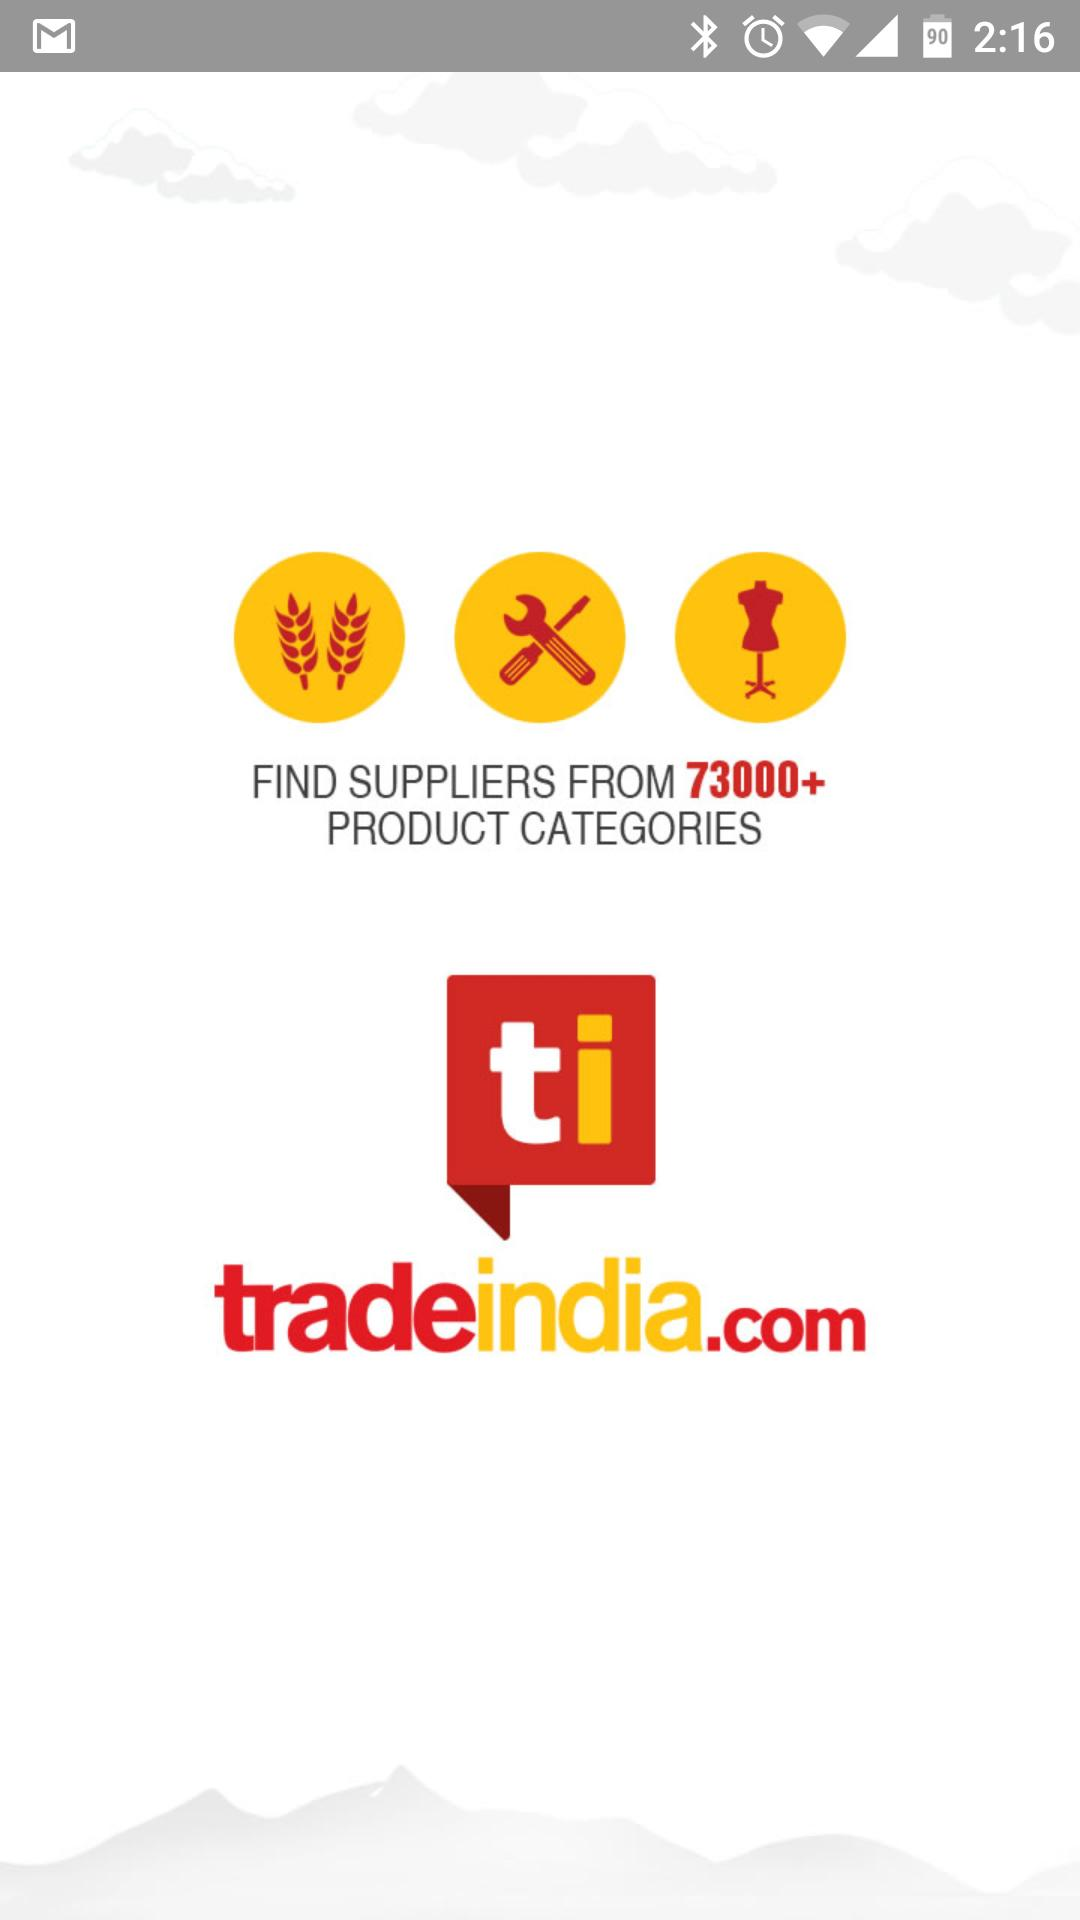 Tradeindia App for Android - APK Download